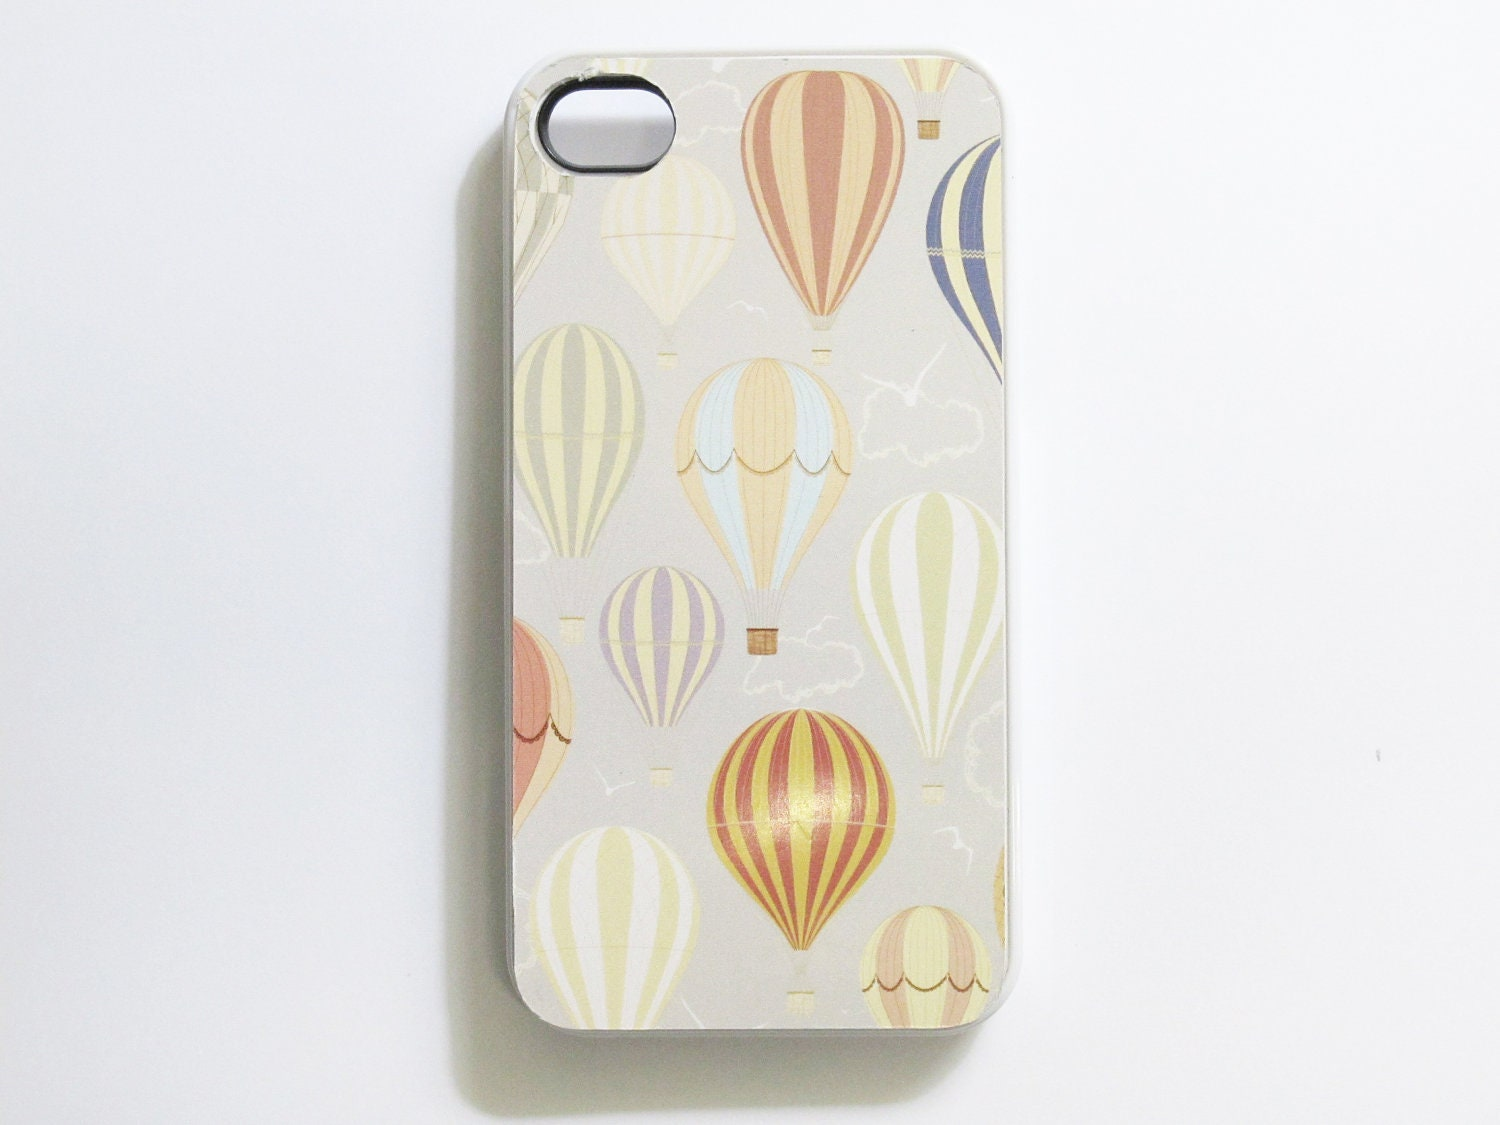 Displaying 16u0026gt; Images For - Cute Iphone 4 Cases For Teenage Girls...